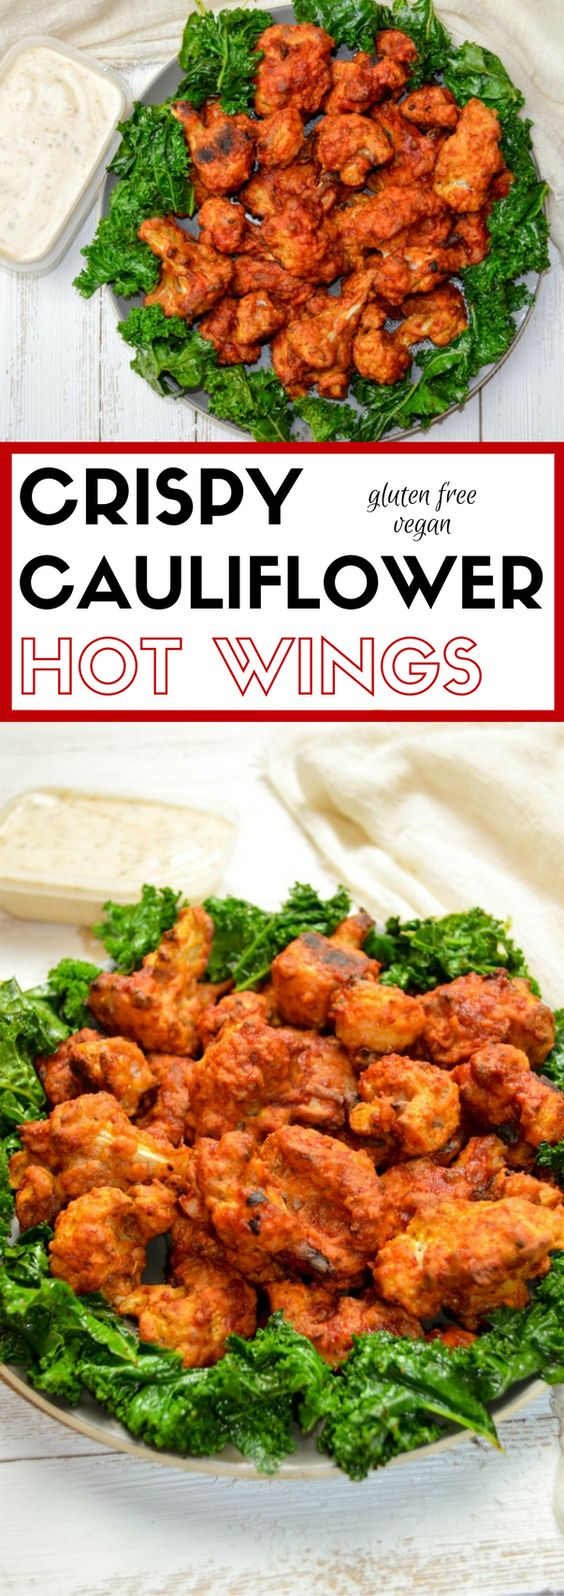 CRISPY CAULIFLOWER HOT WINGS – VEGAN AND GLUTEN FREE #crispy #cauliflower #hotwings #chicken #chickenrecipes #vegan #veganrecipes #glutenfree